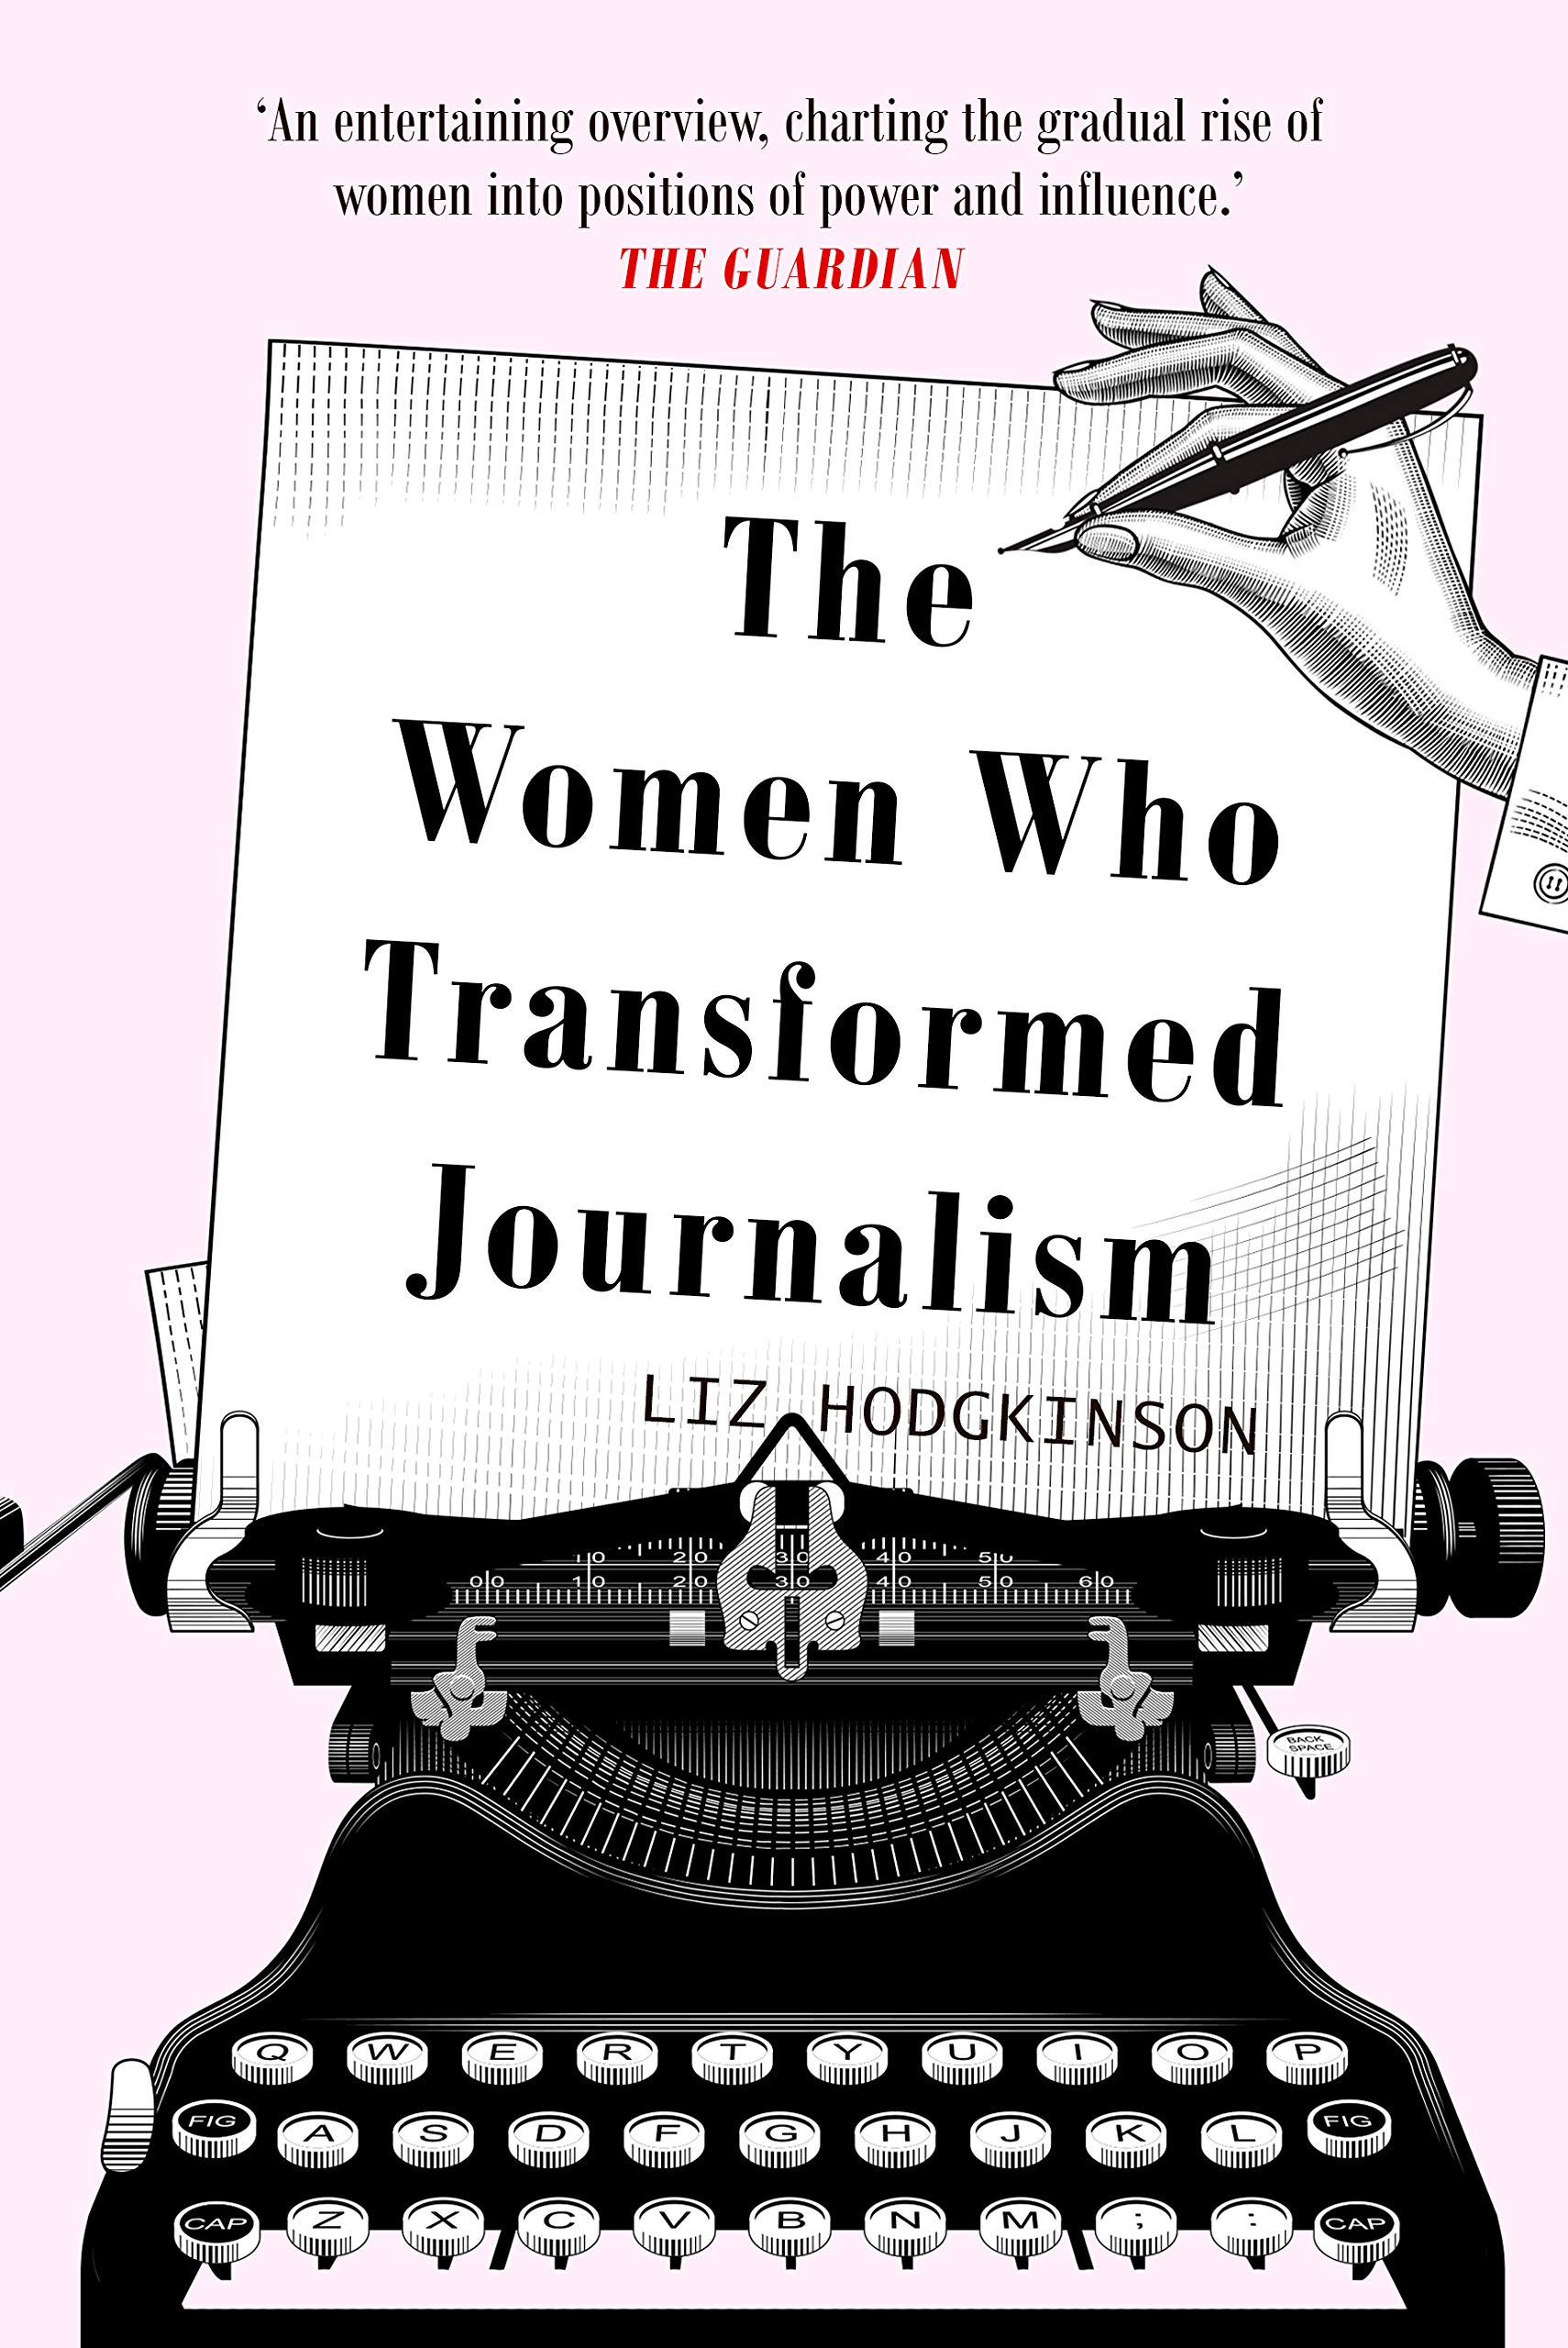 The Women Who Transformed Journalism